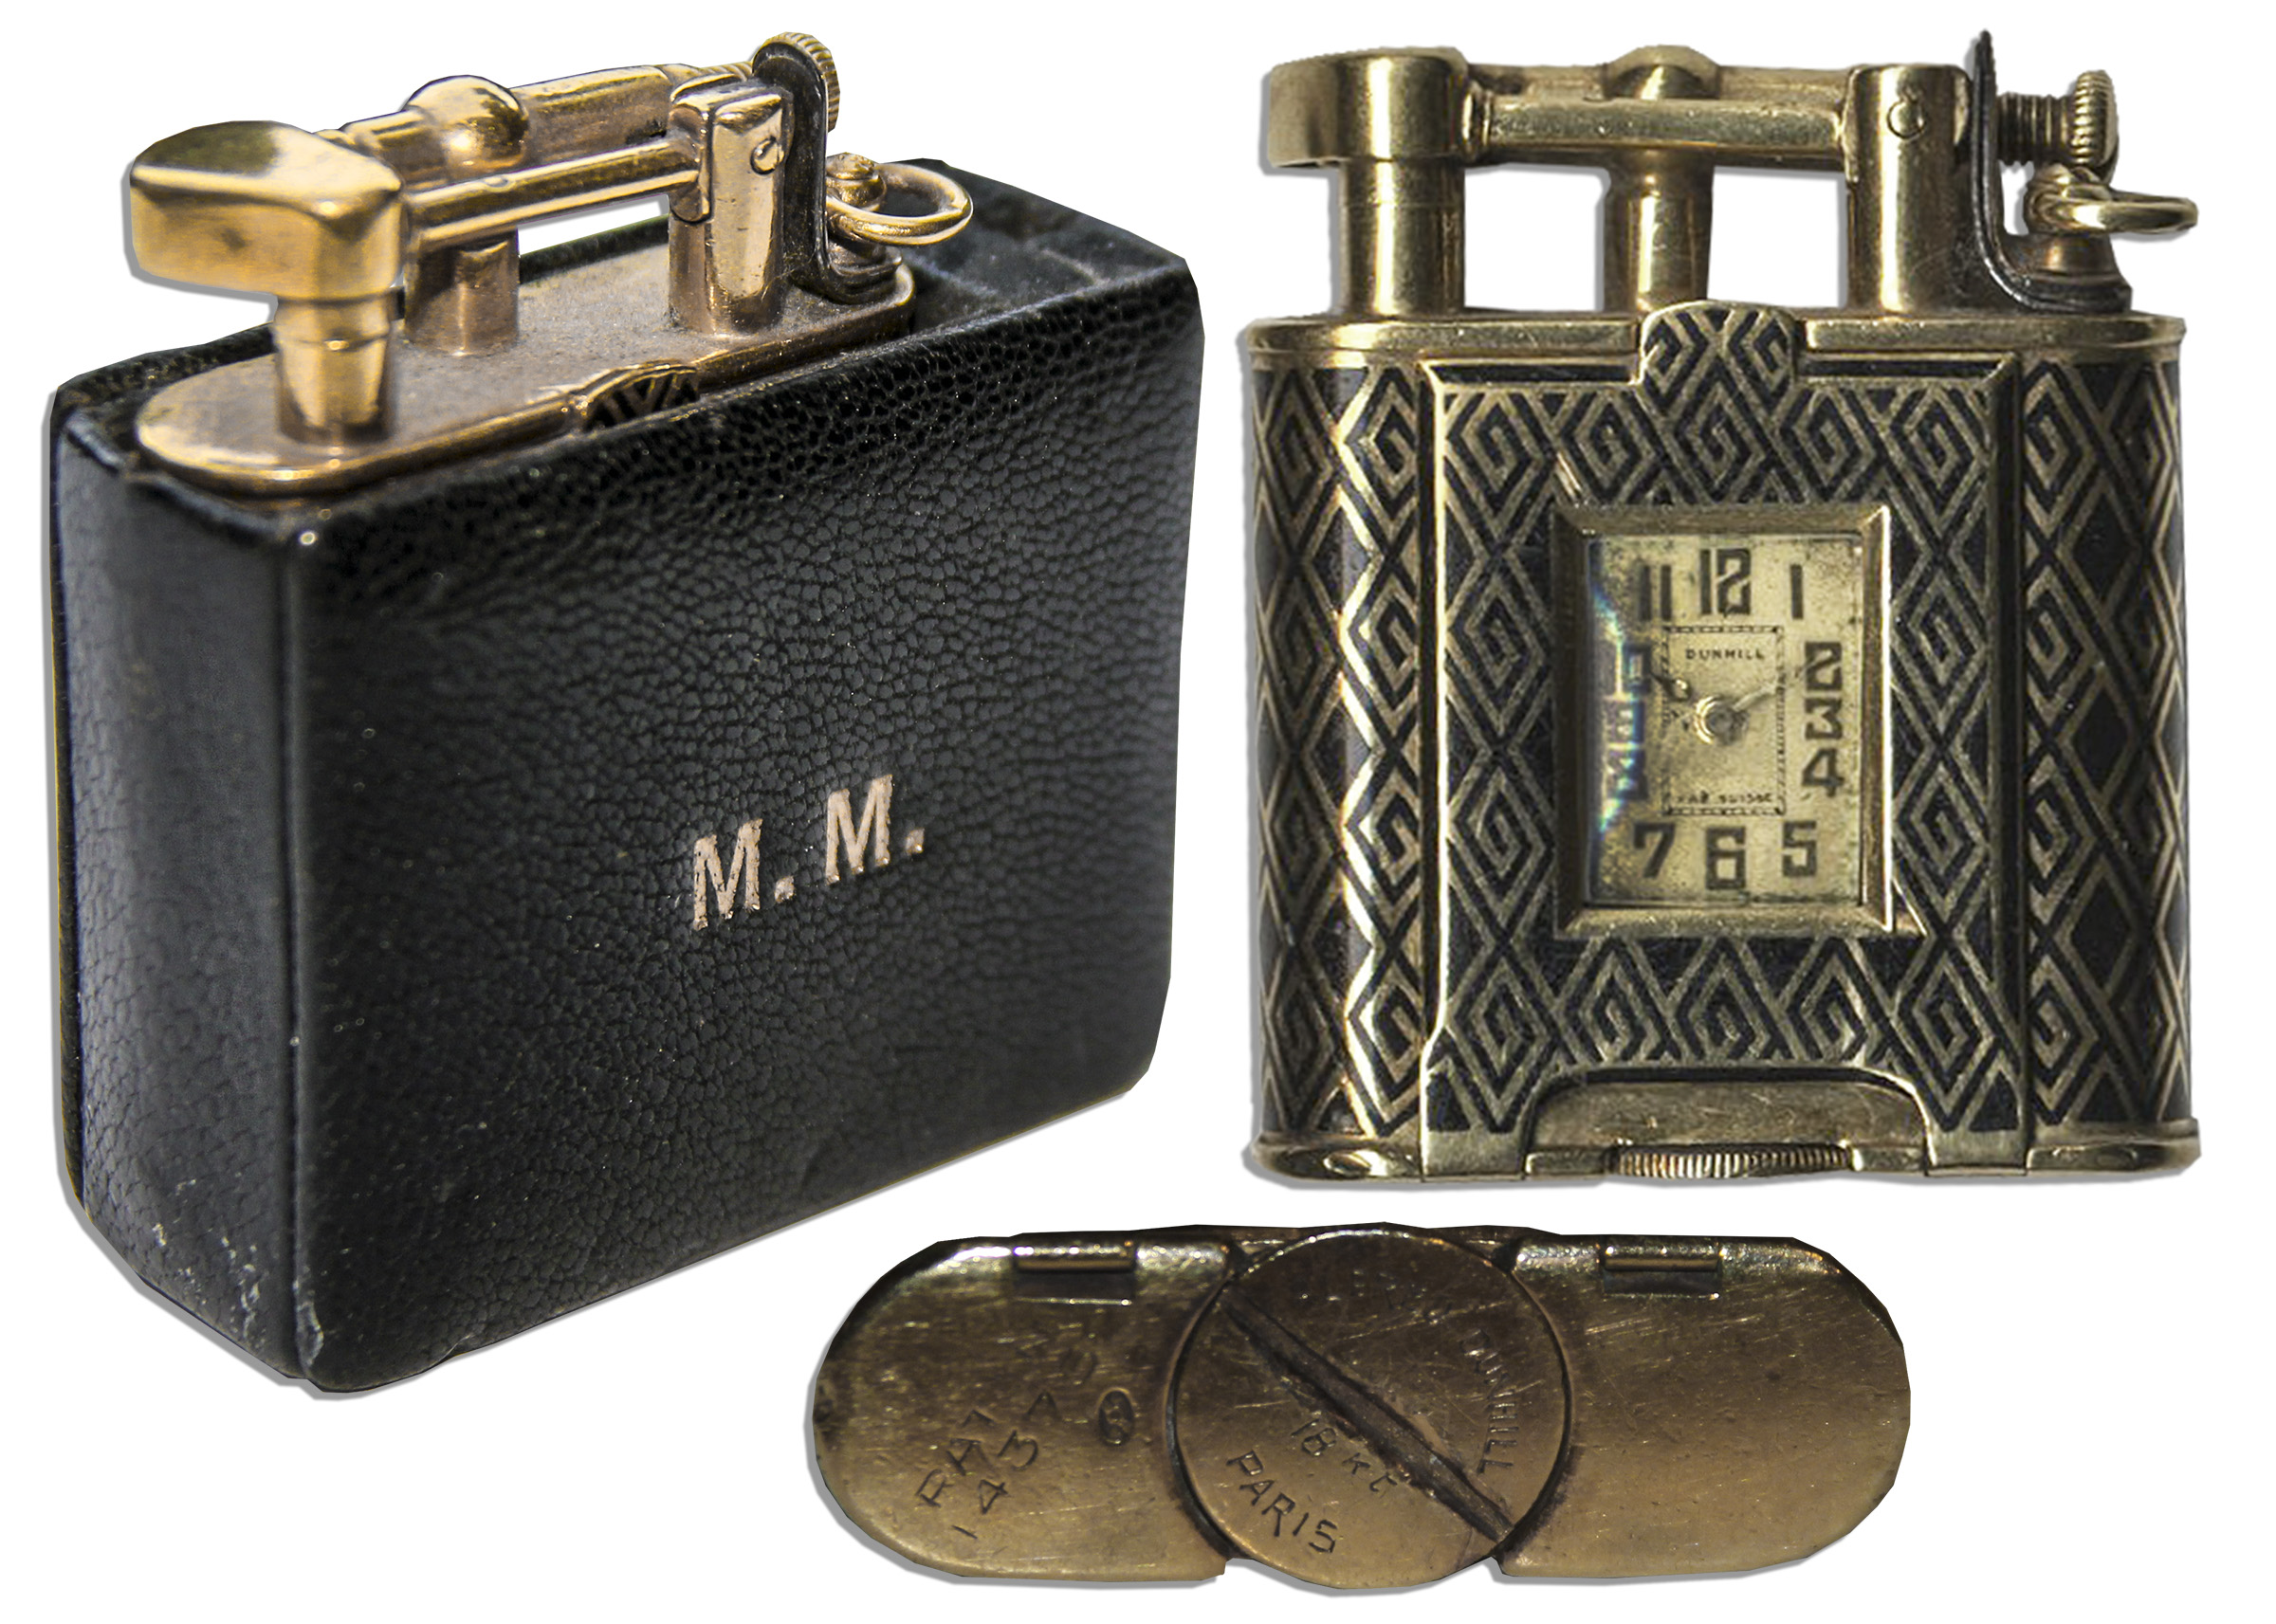 Marilyn Monroe dress auction Marilyn Monroe Personally Owned 18k Gold Dunhill Lighter & Timepiece -- In Black Leather Case With Her Monogram